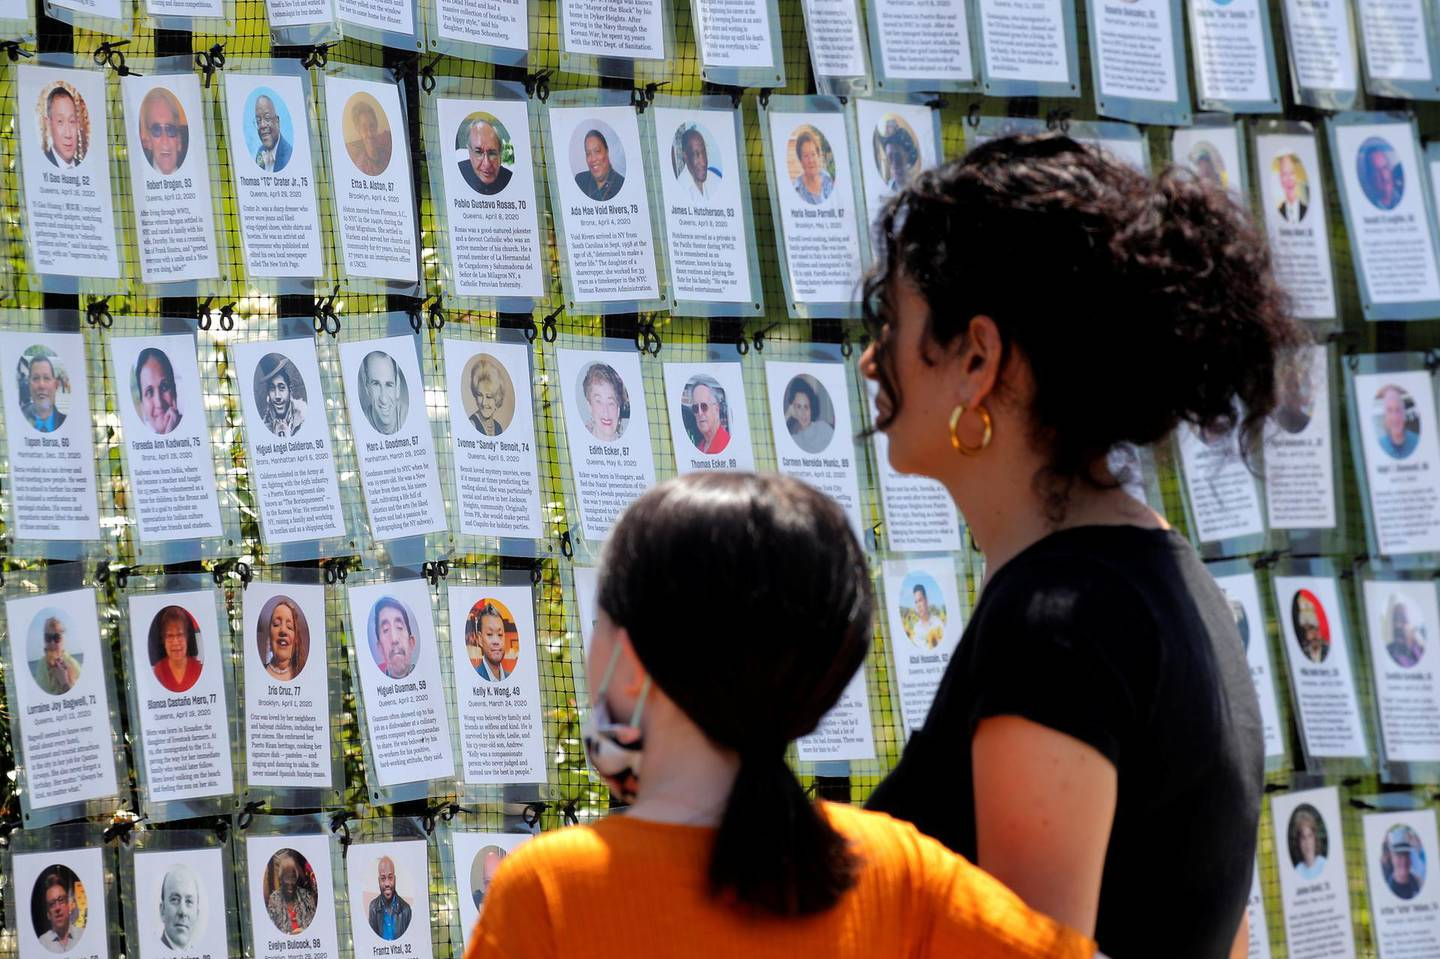 """A woman and child look at the """"Naming the Lost Memorials,"""" as the U.S. deaths from the coronavirus disease (COVID-19) are expected to surpass 600,000, at The Green-Wood Cemetery in Brooklyn, New York, U.S., June 10, 2021. REUTERS/Brendan McDermid"""